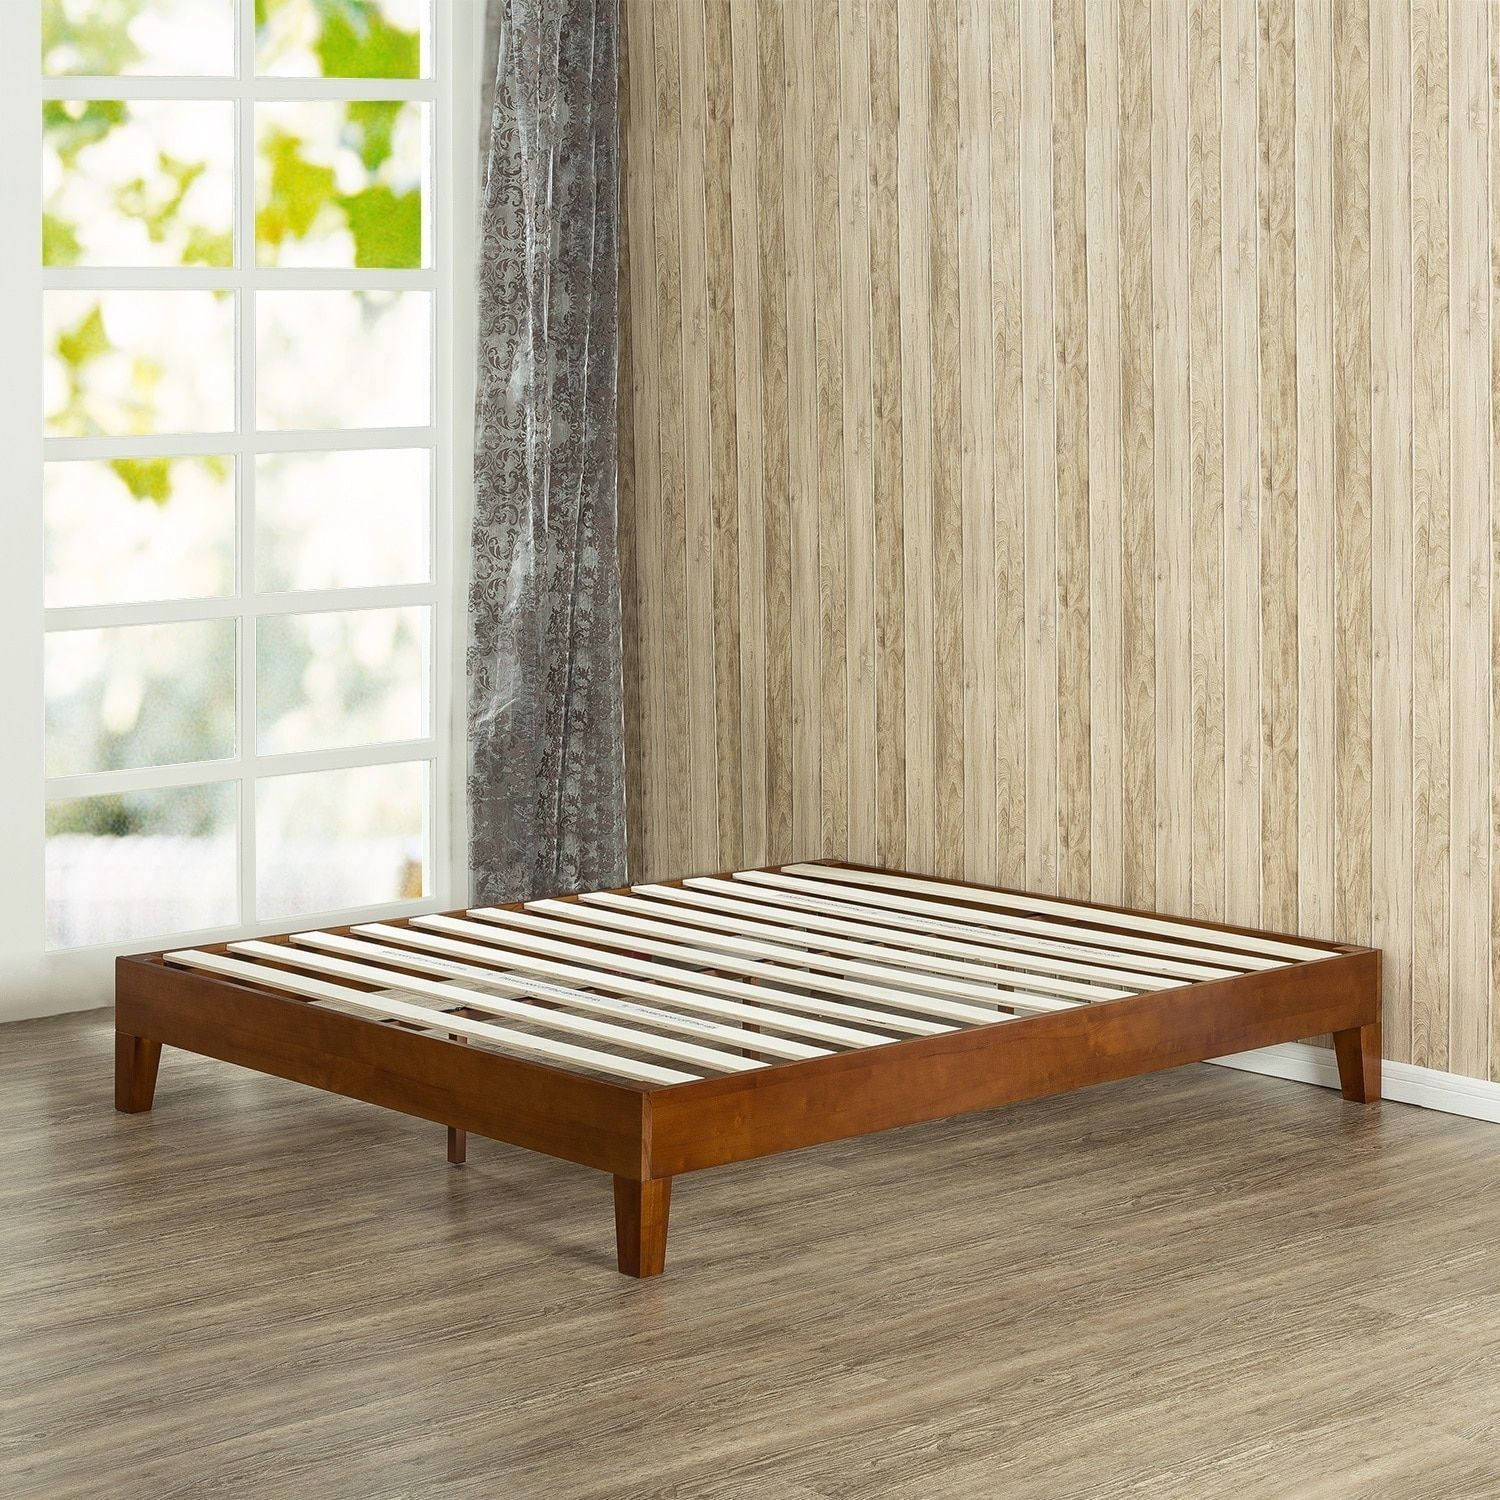 Priage 12-Inch Deluxe Solid Wood Queen-Size Platform Bed   Products ...